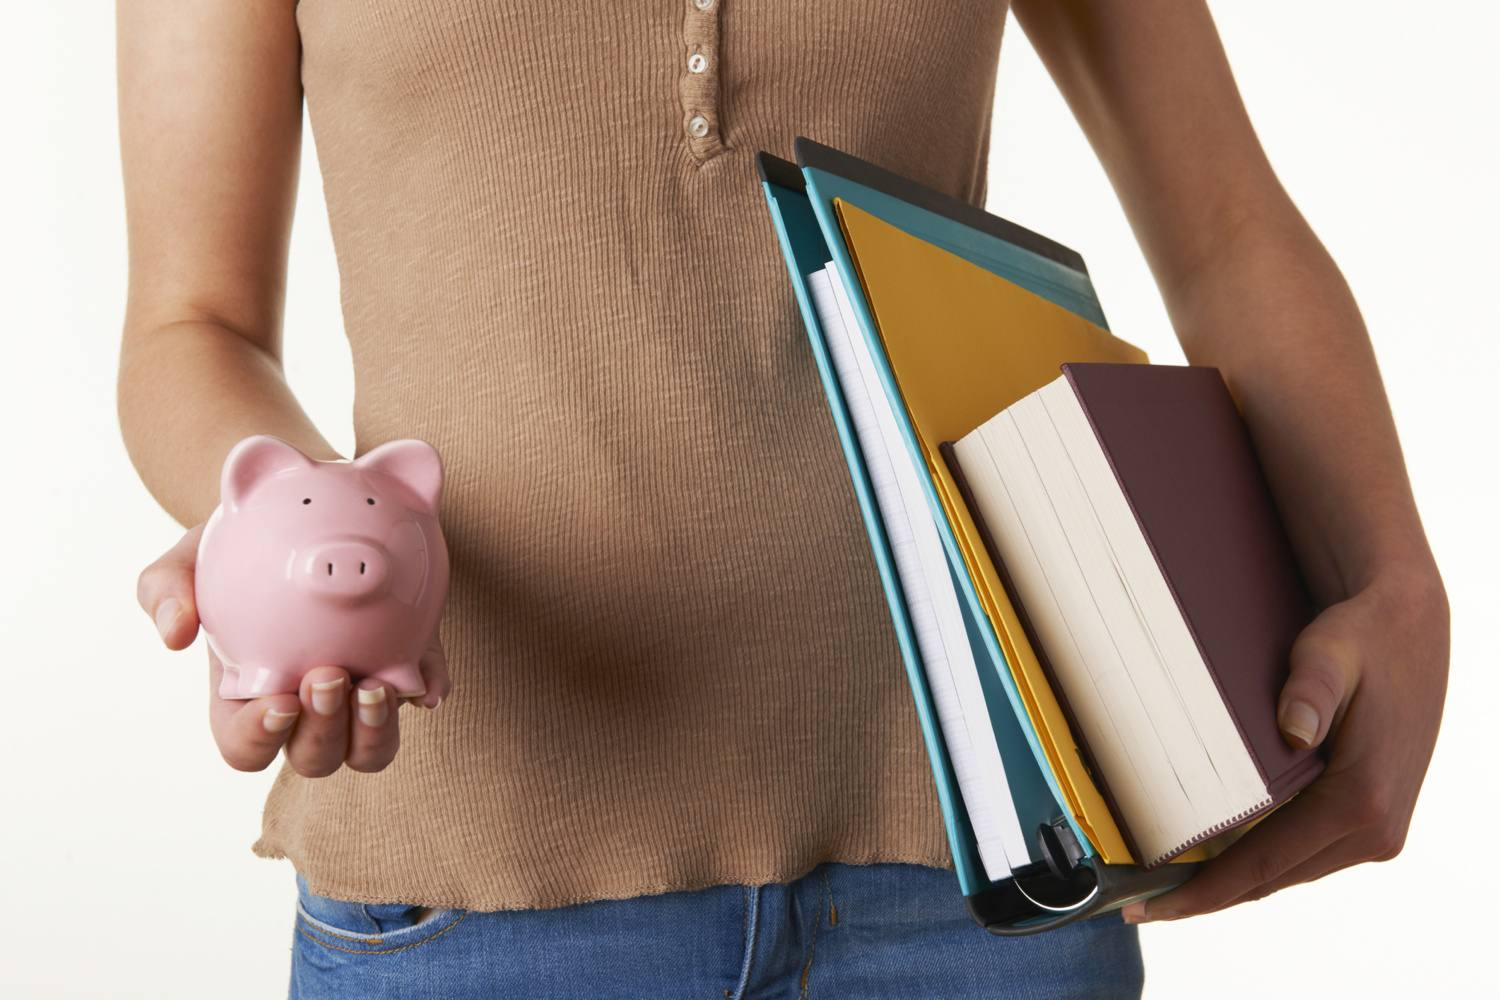 person holding a piggy bank in one hand and school books in the other